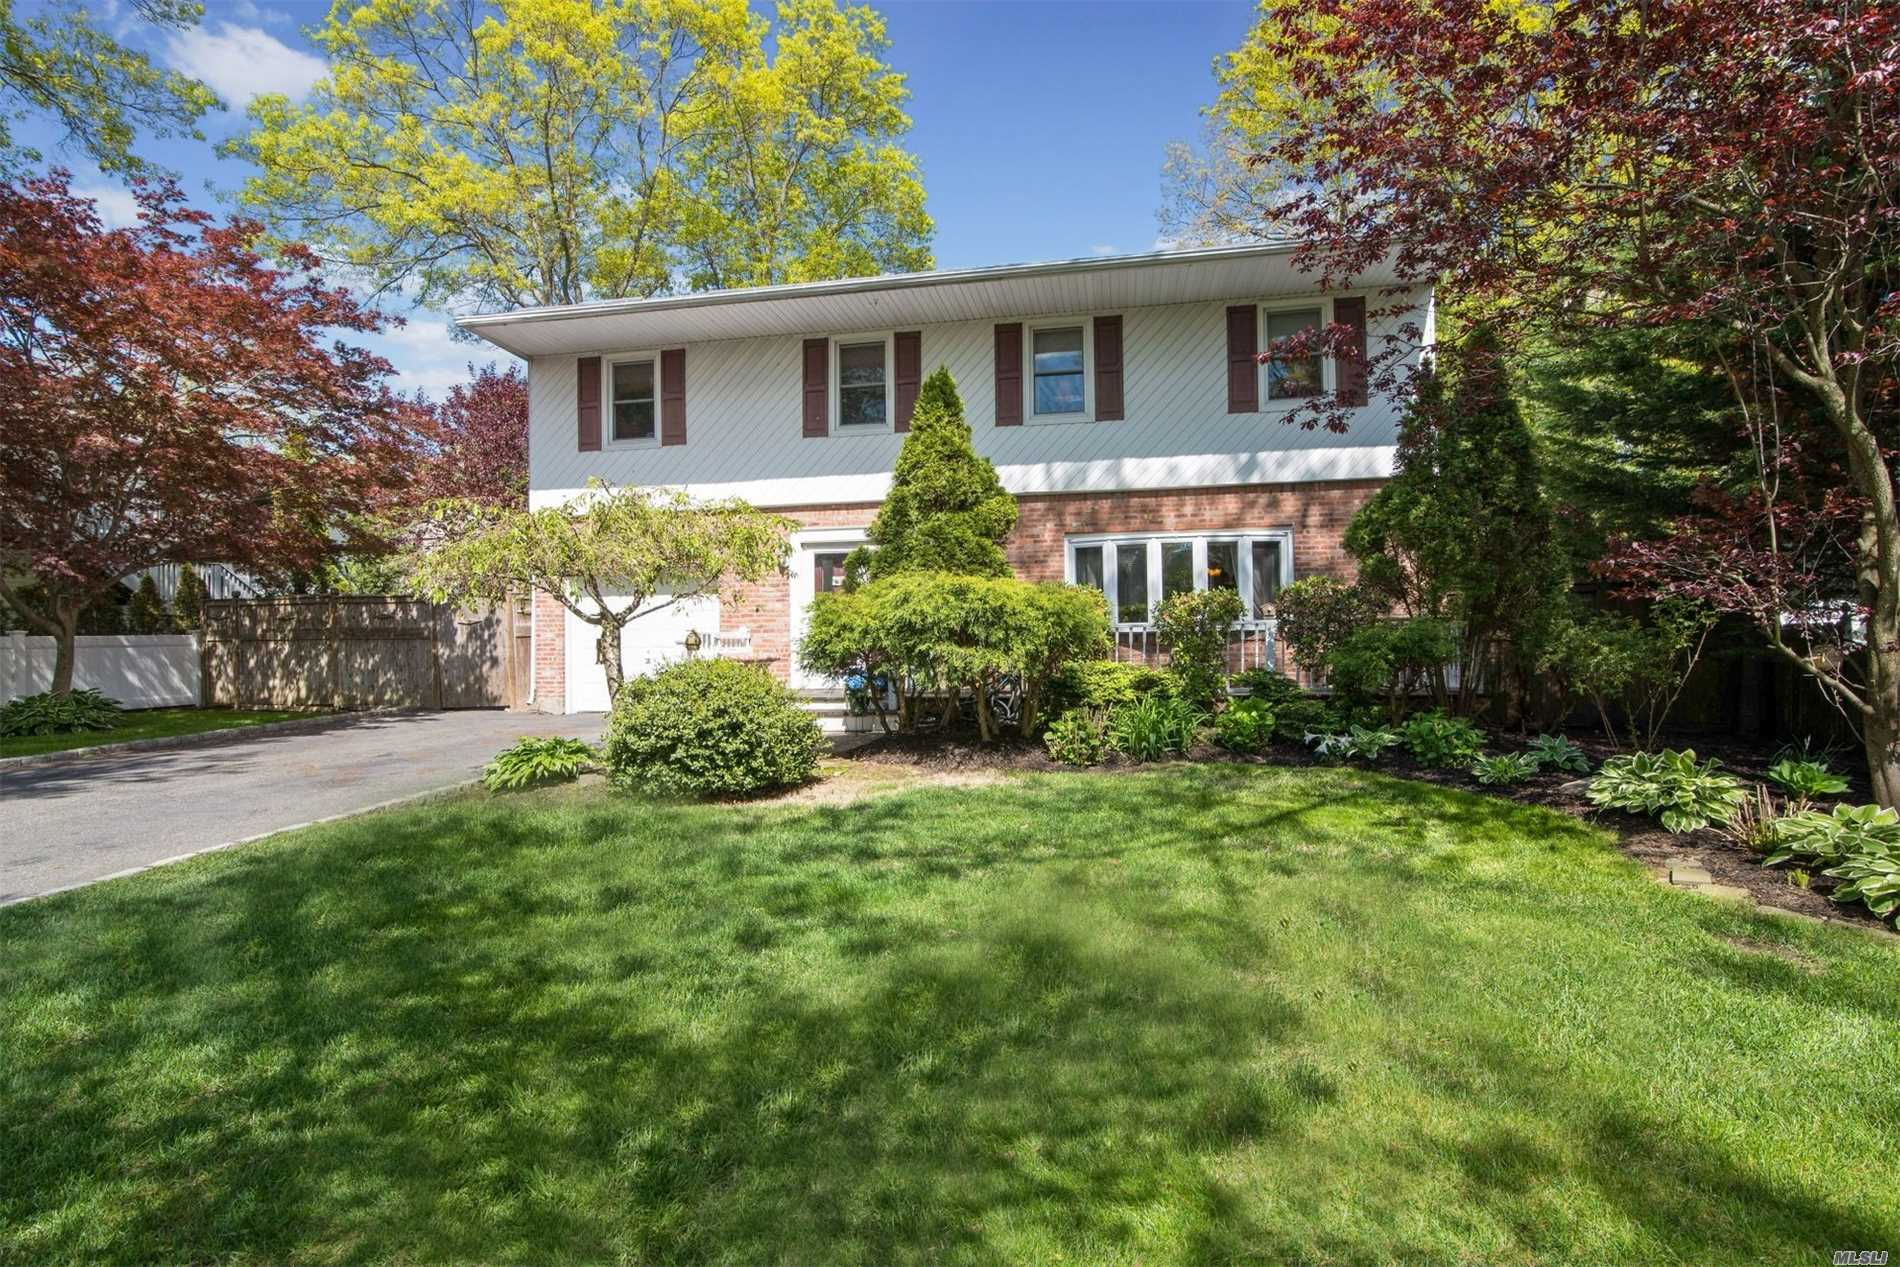 Looking for a Beautiful Brookfield Colonial with over 2, 000 sq ft in Smithtown schools? Look no further! This 4 bedroom 2.5 bath home sits on .26 acres. It has a one car garage, finished basement and in ground pool with deck. Master suite has two walk in closets and a full bath. Updated boiler, cesspool, hot water heater and 200 amp service.